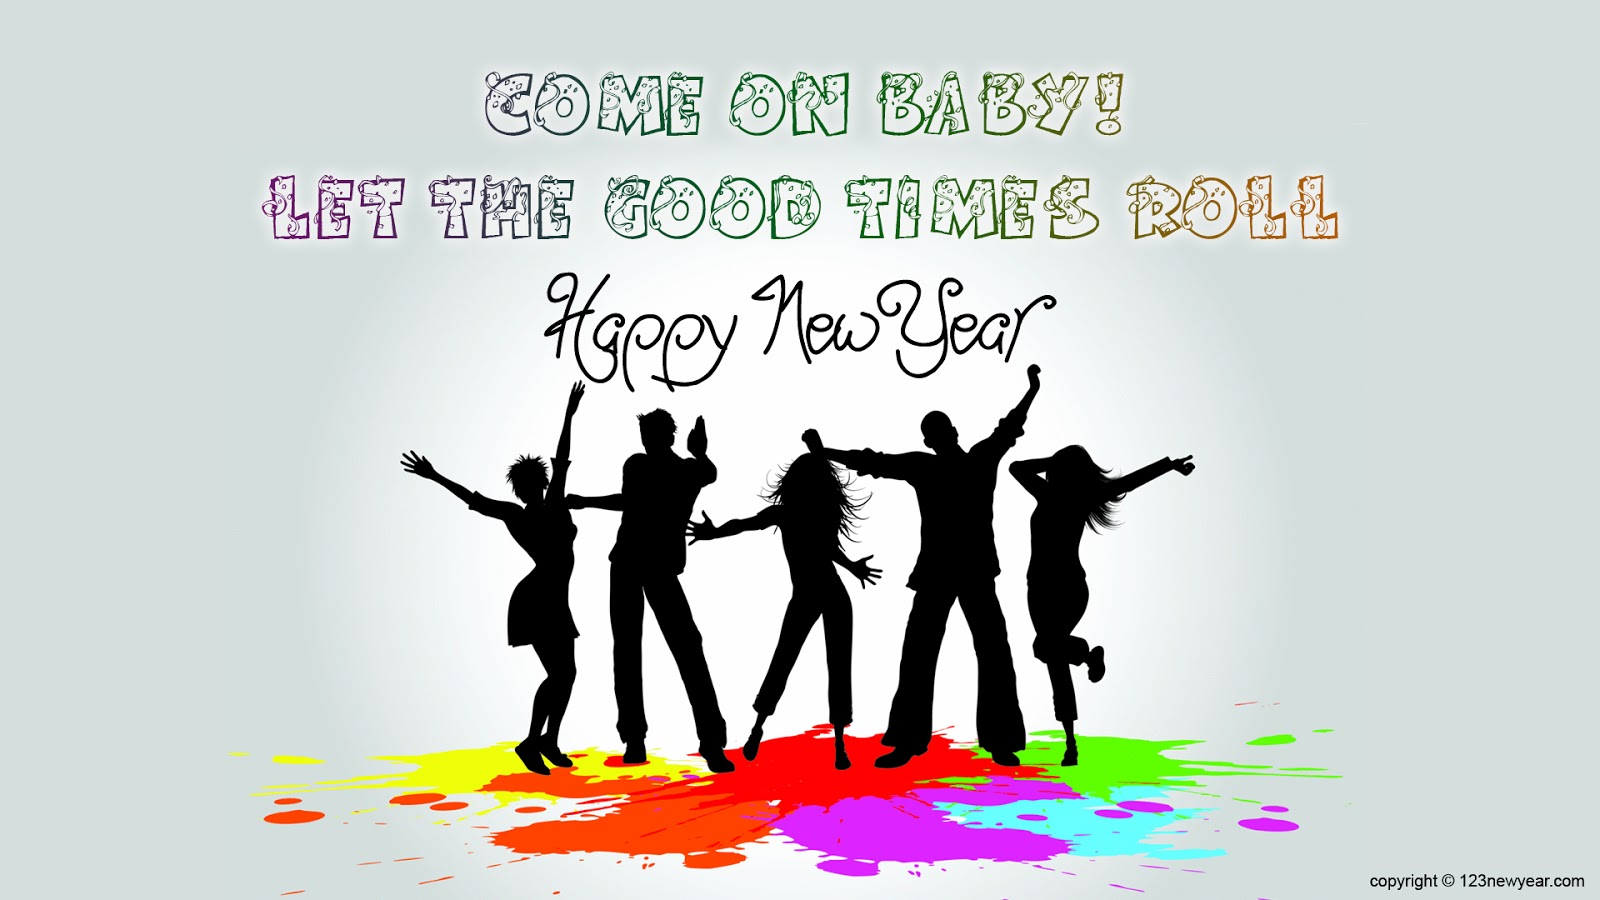 Happy New Year Wallpapers 2013 - 2013 Wallpapers